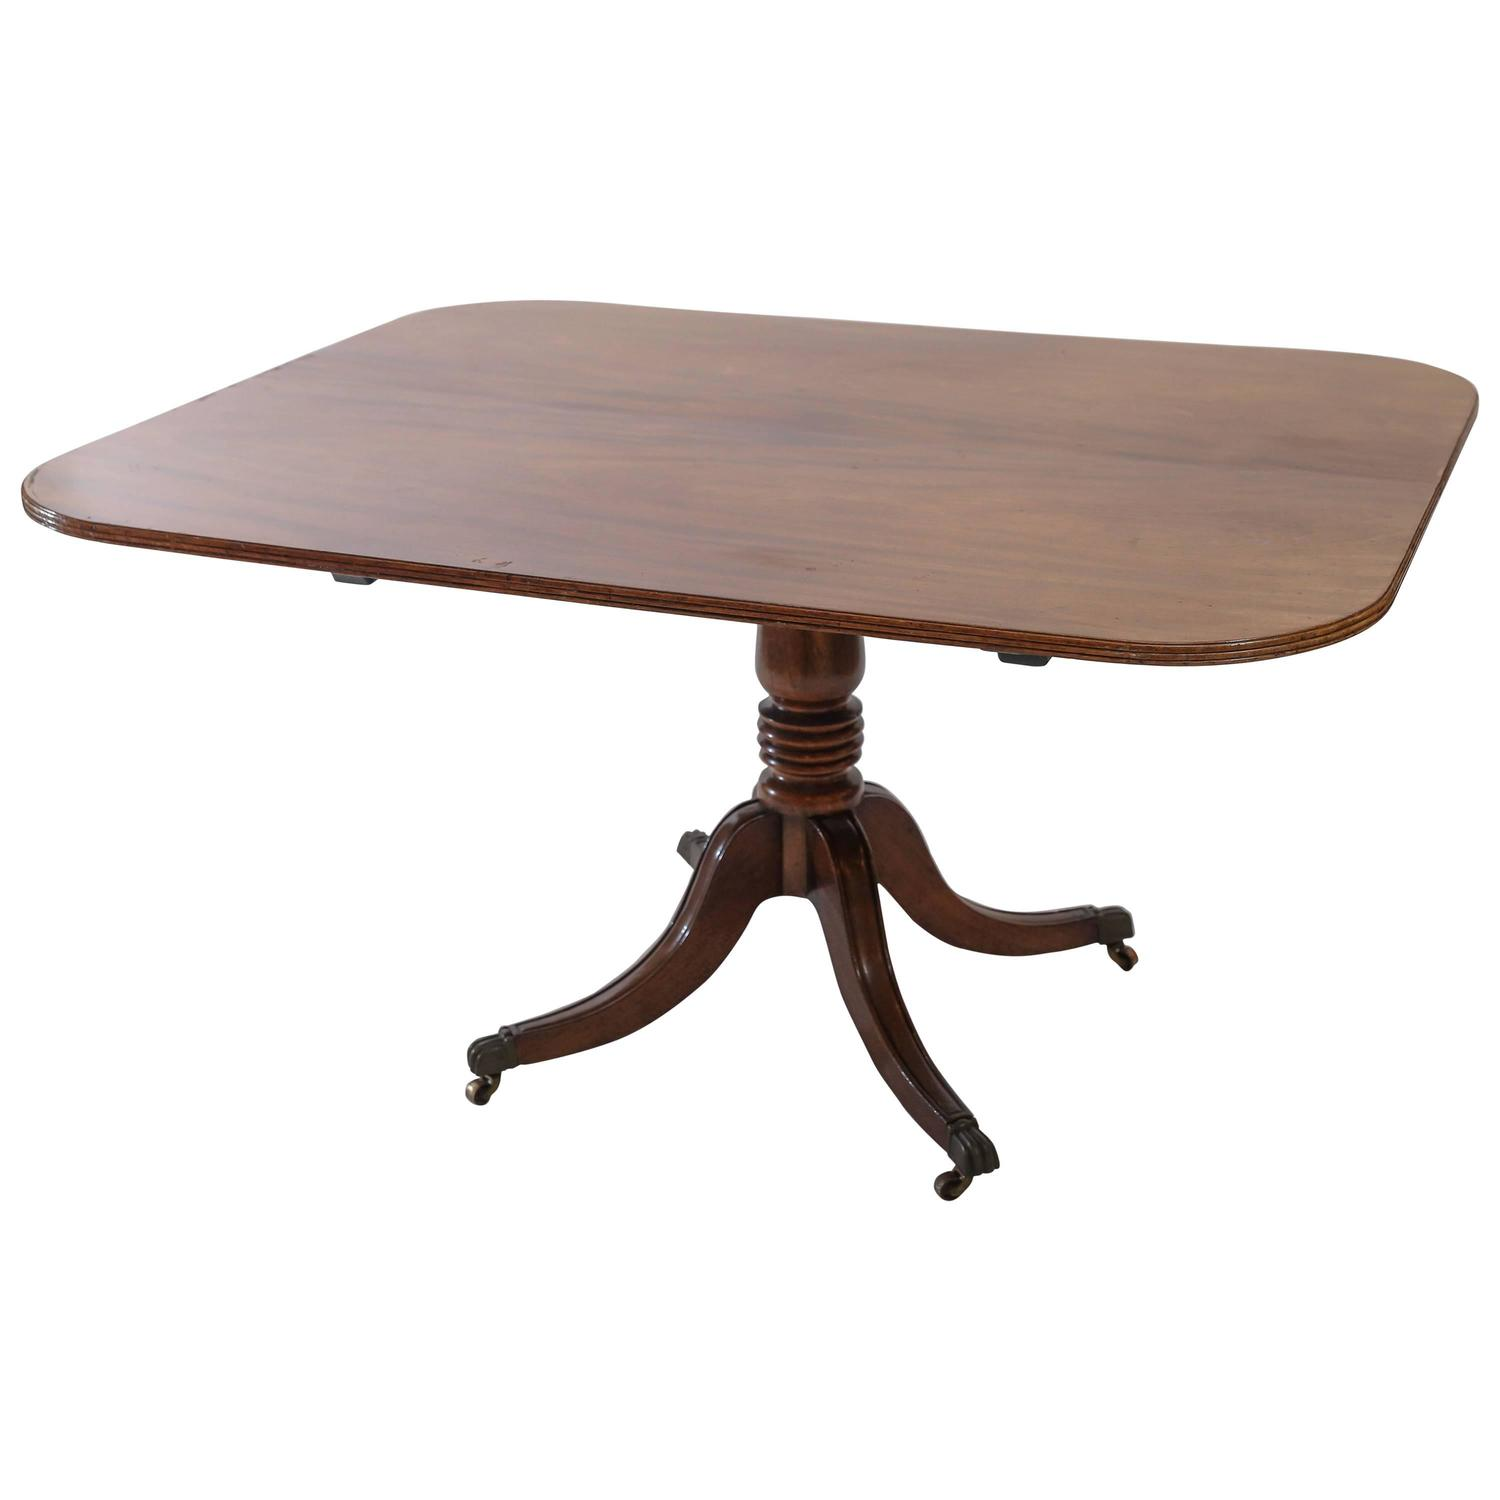 period mahogany dining room or breakfast table at 1stdibs